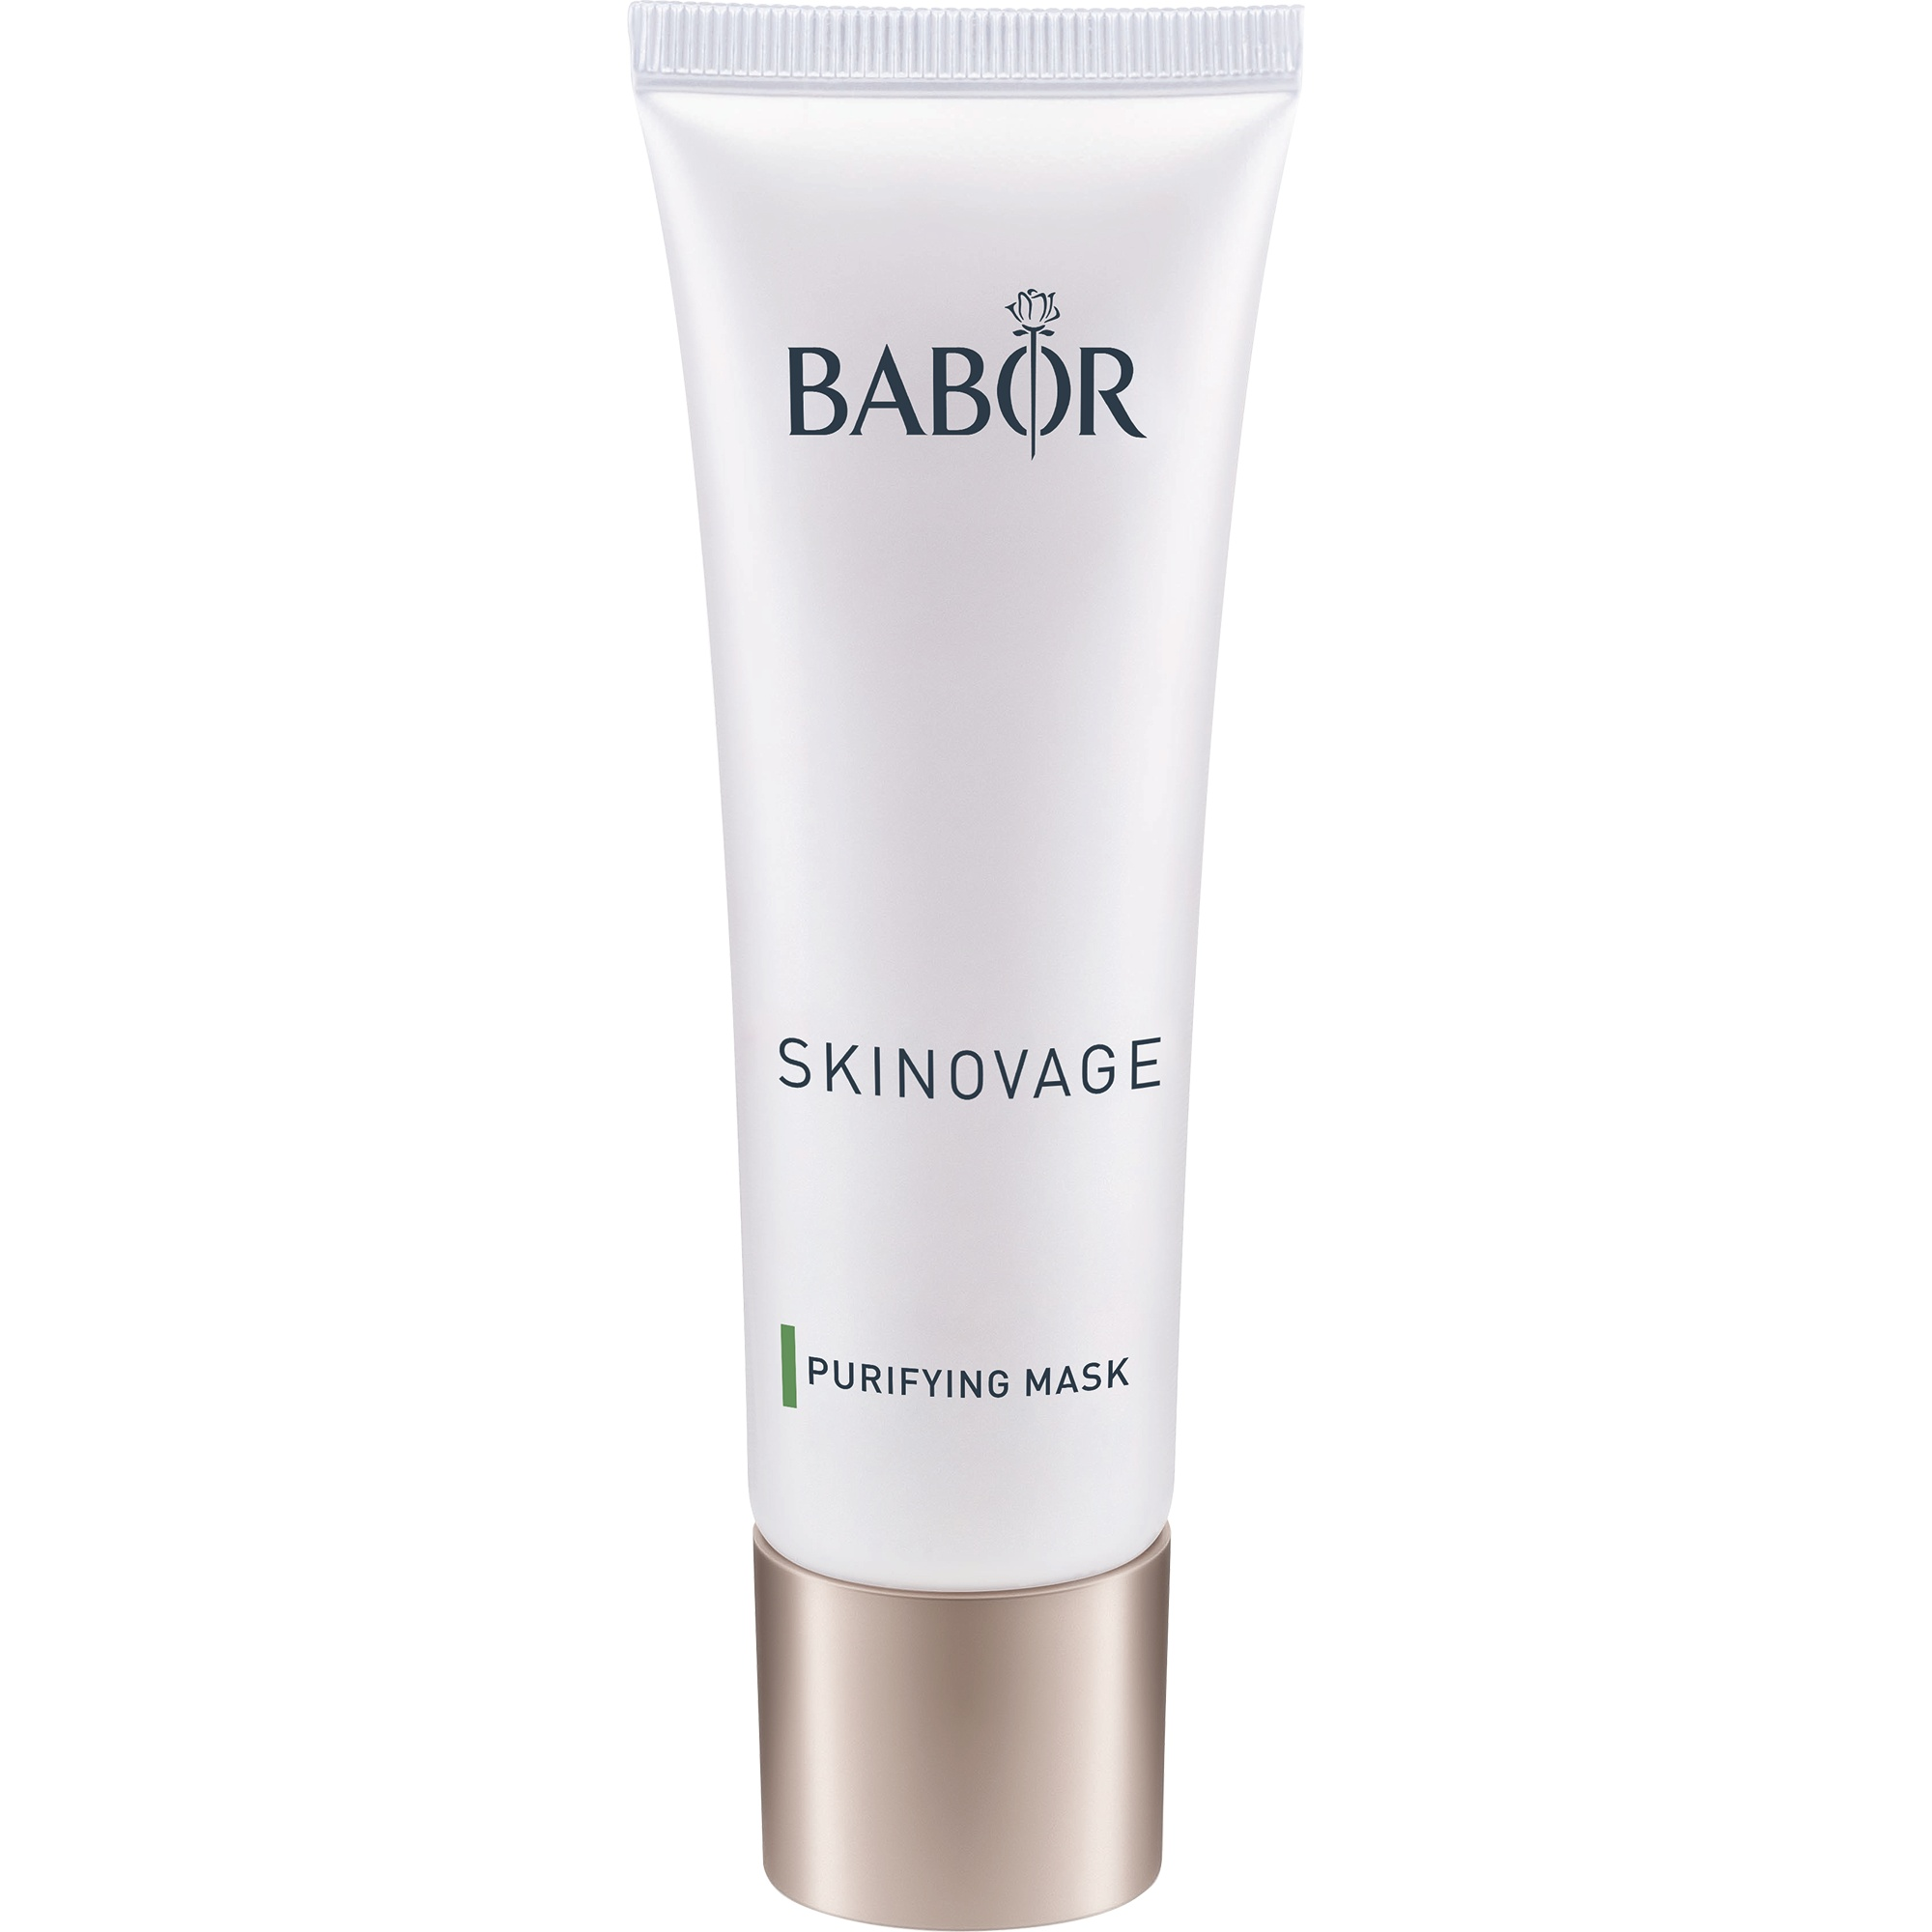 Skinovage Purifying Mask 50 ml